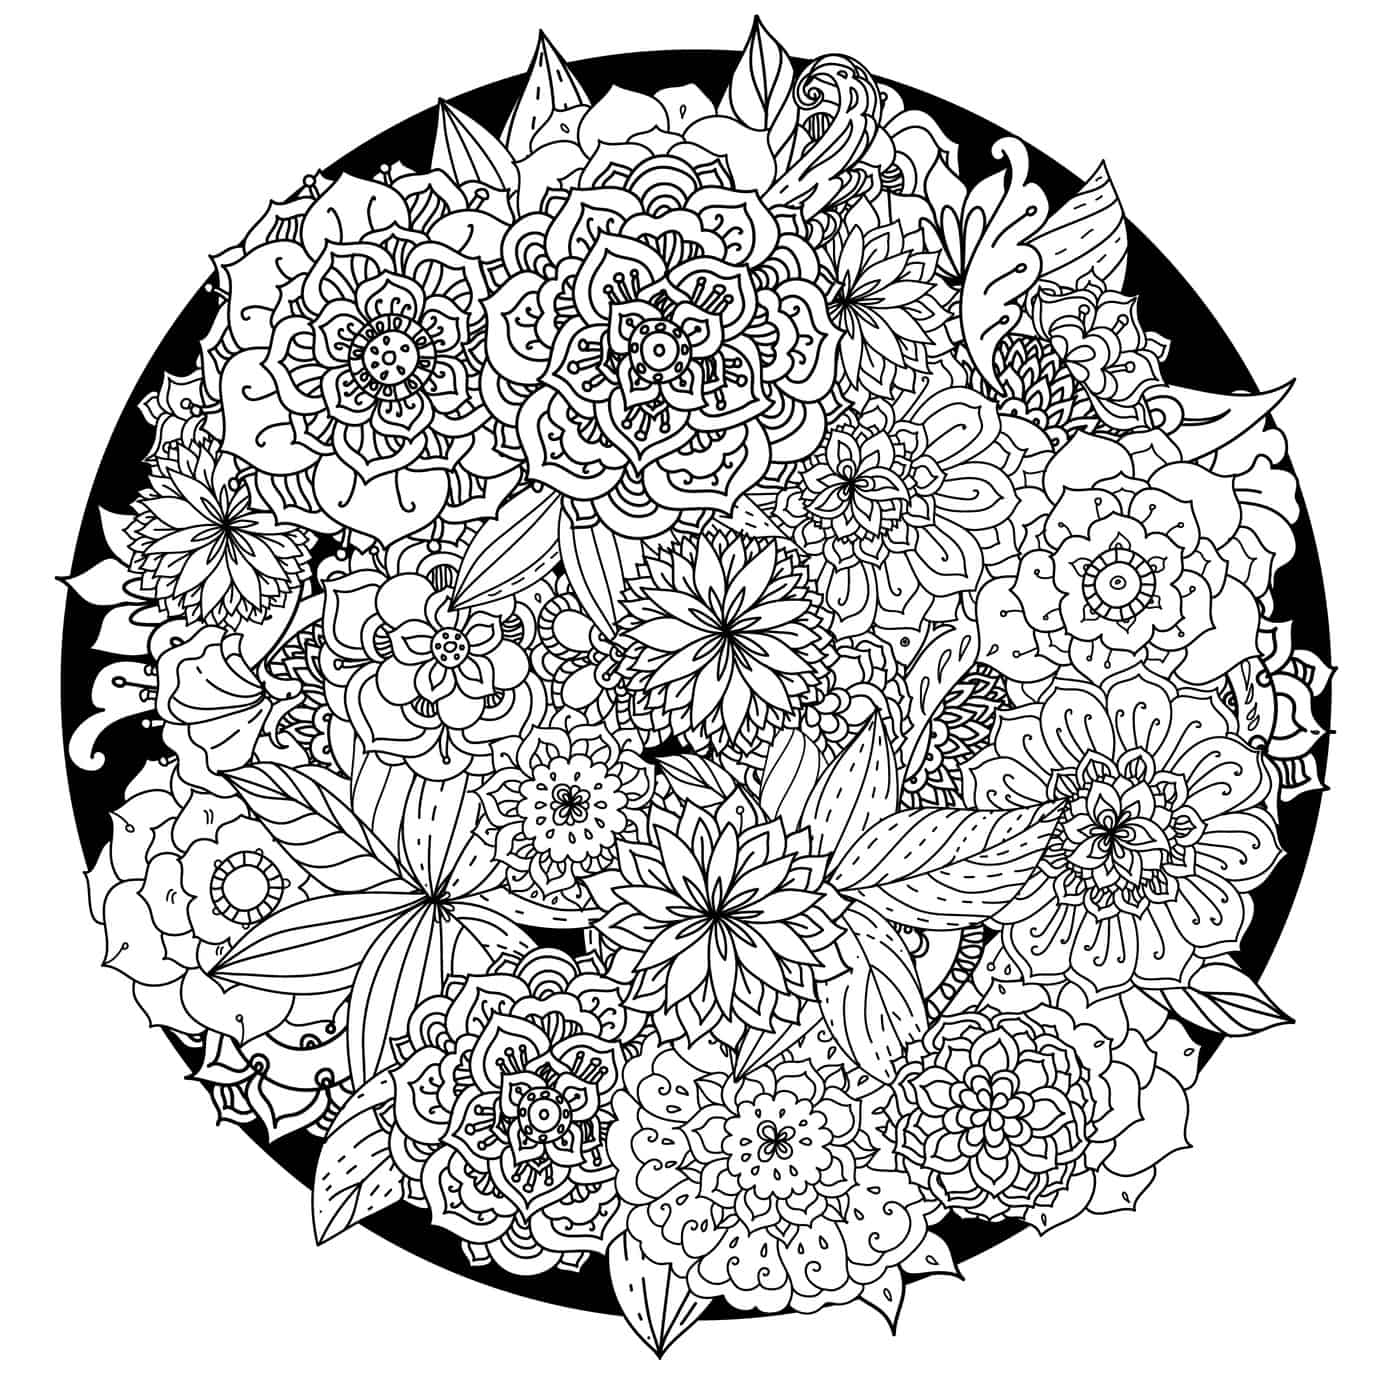 coloring mandala colors these printable abstract coloring pages relieve stress and mandala coloring colors